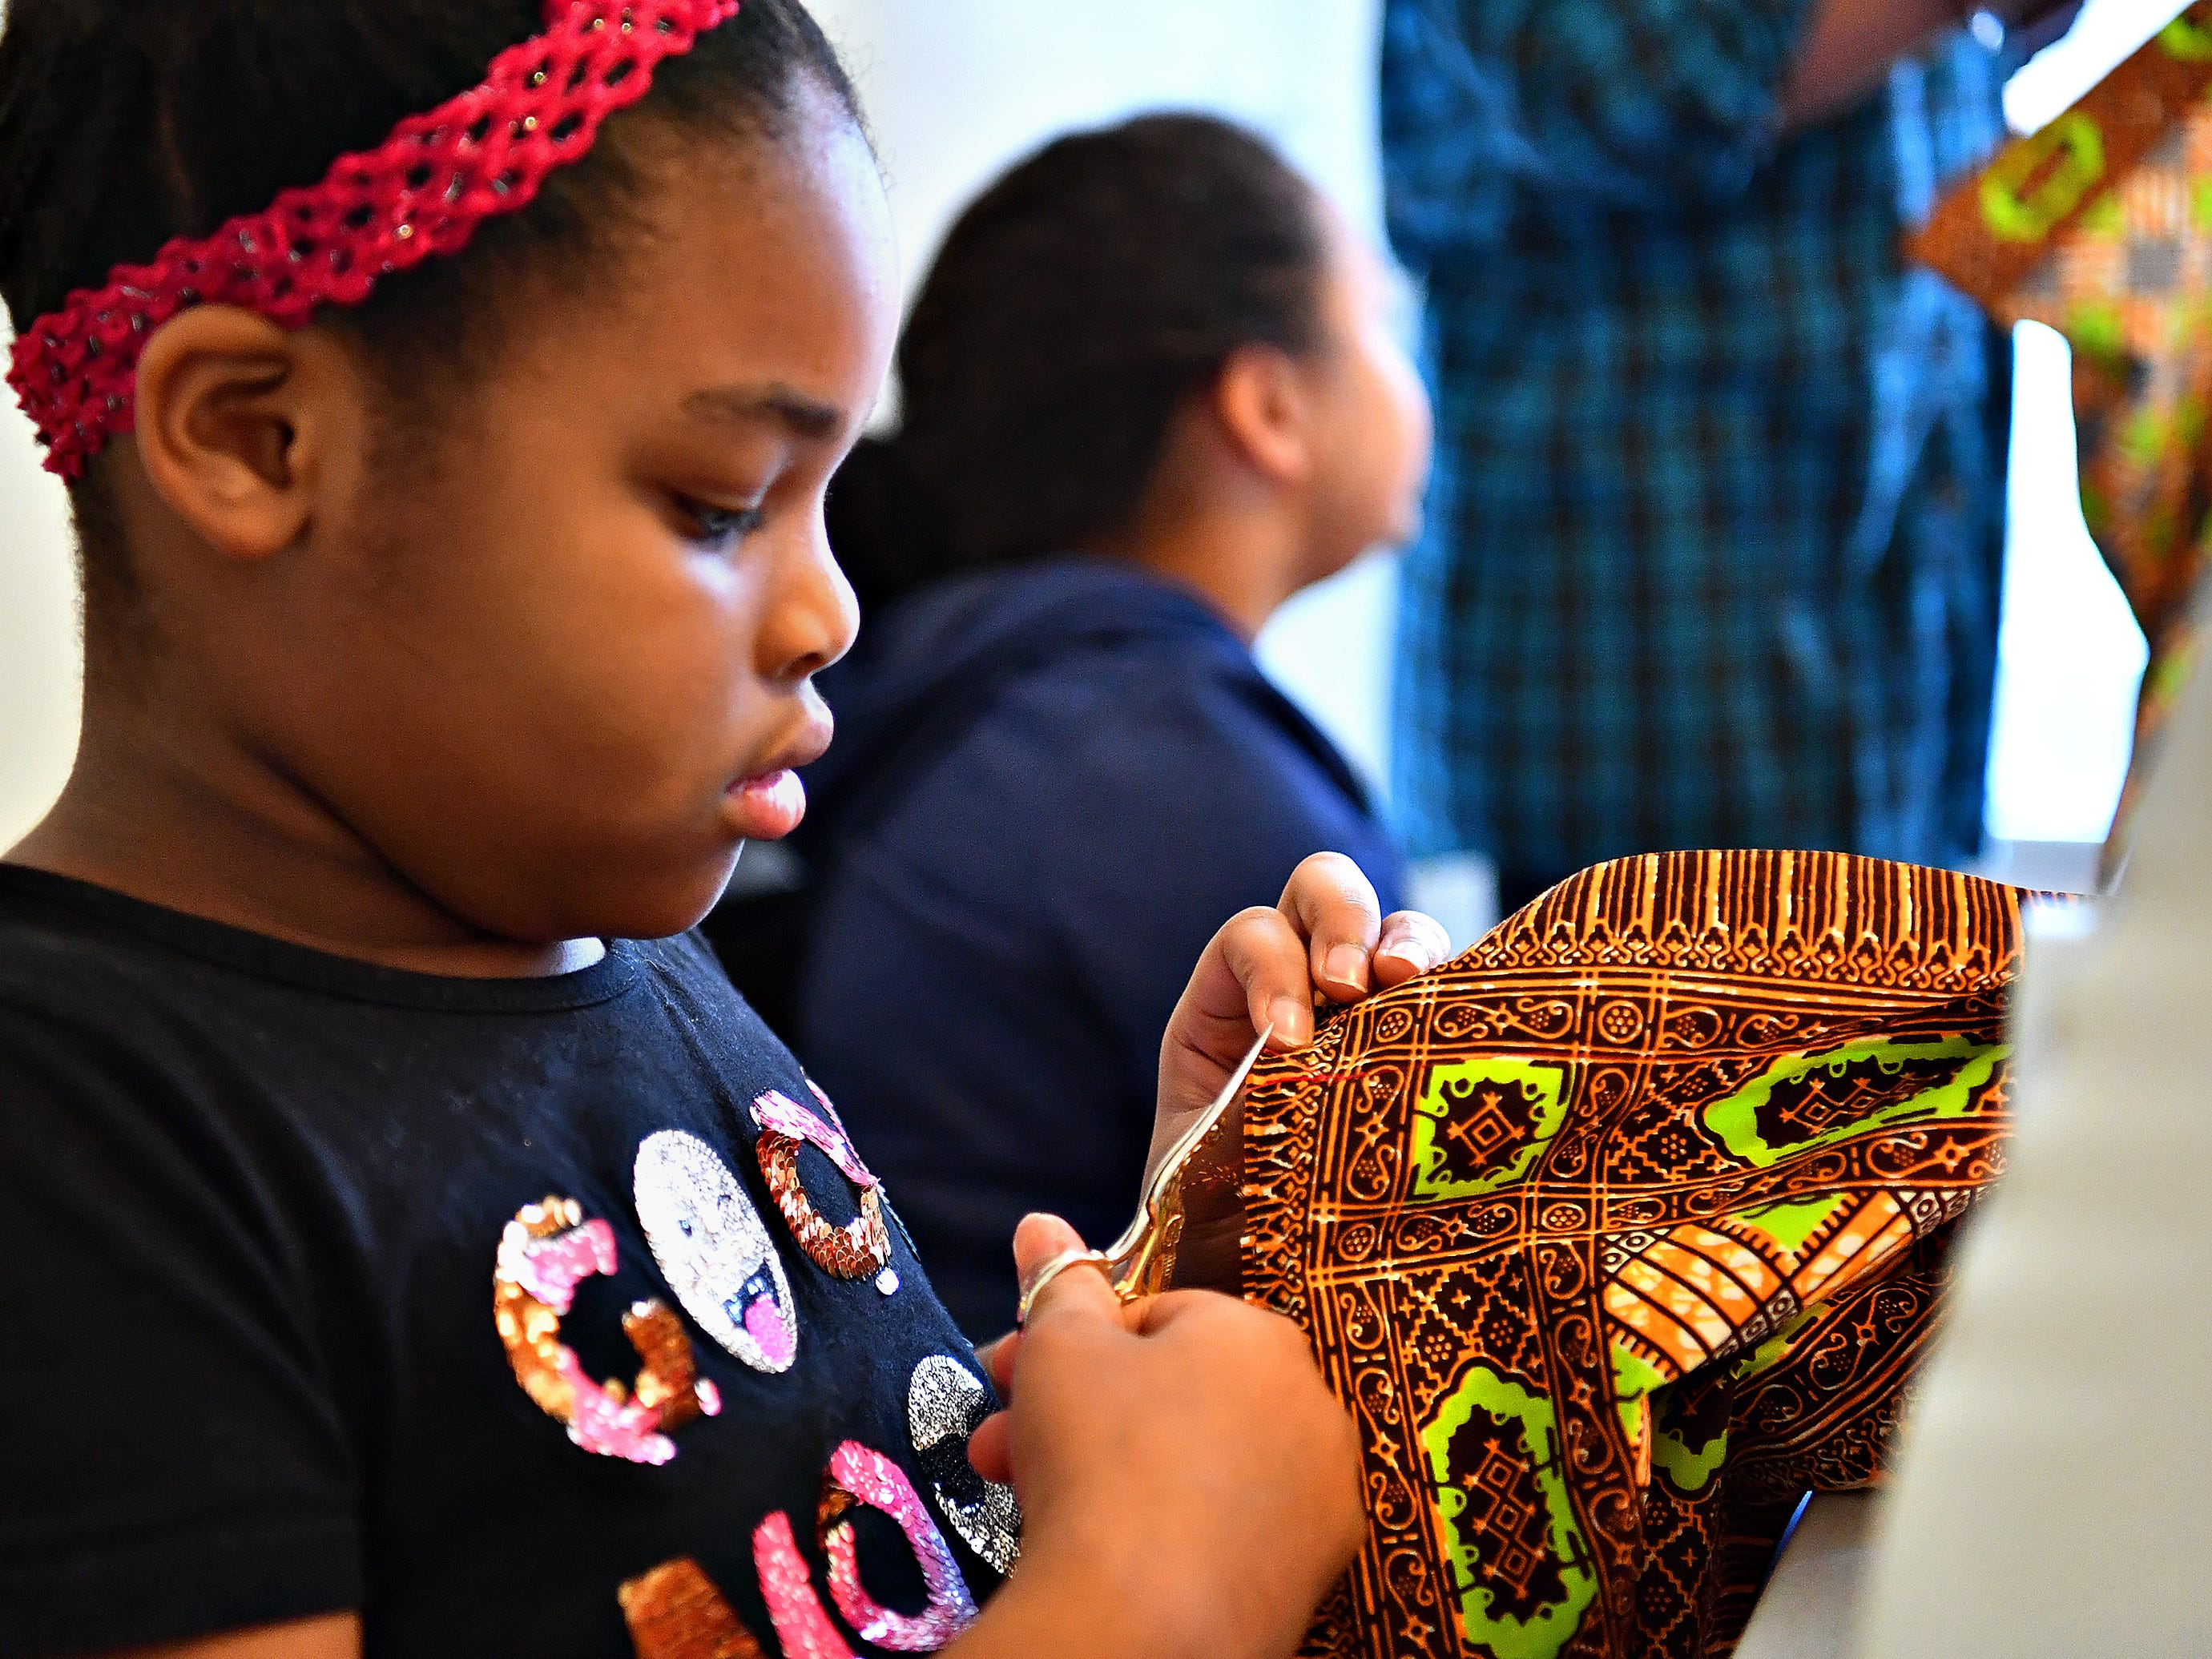 Maliah Shabazz, 8, of West York Borough, works on her pillow project during a sewing workshop led by Victoria Kageni-Woodard at her store, Gusa by Victoria, in York City, Saturday, Jan. 5, 2019. Dawn J. Sagert photo